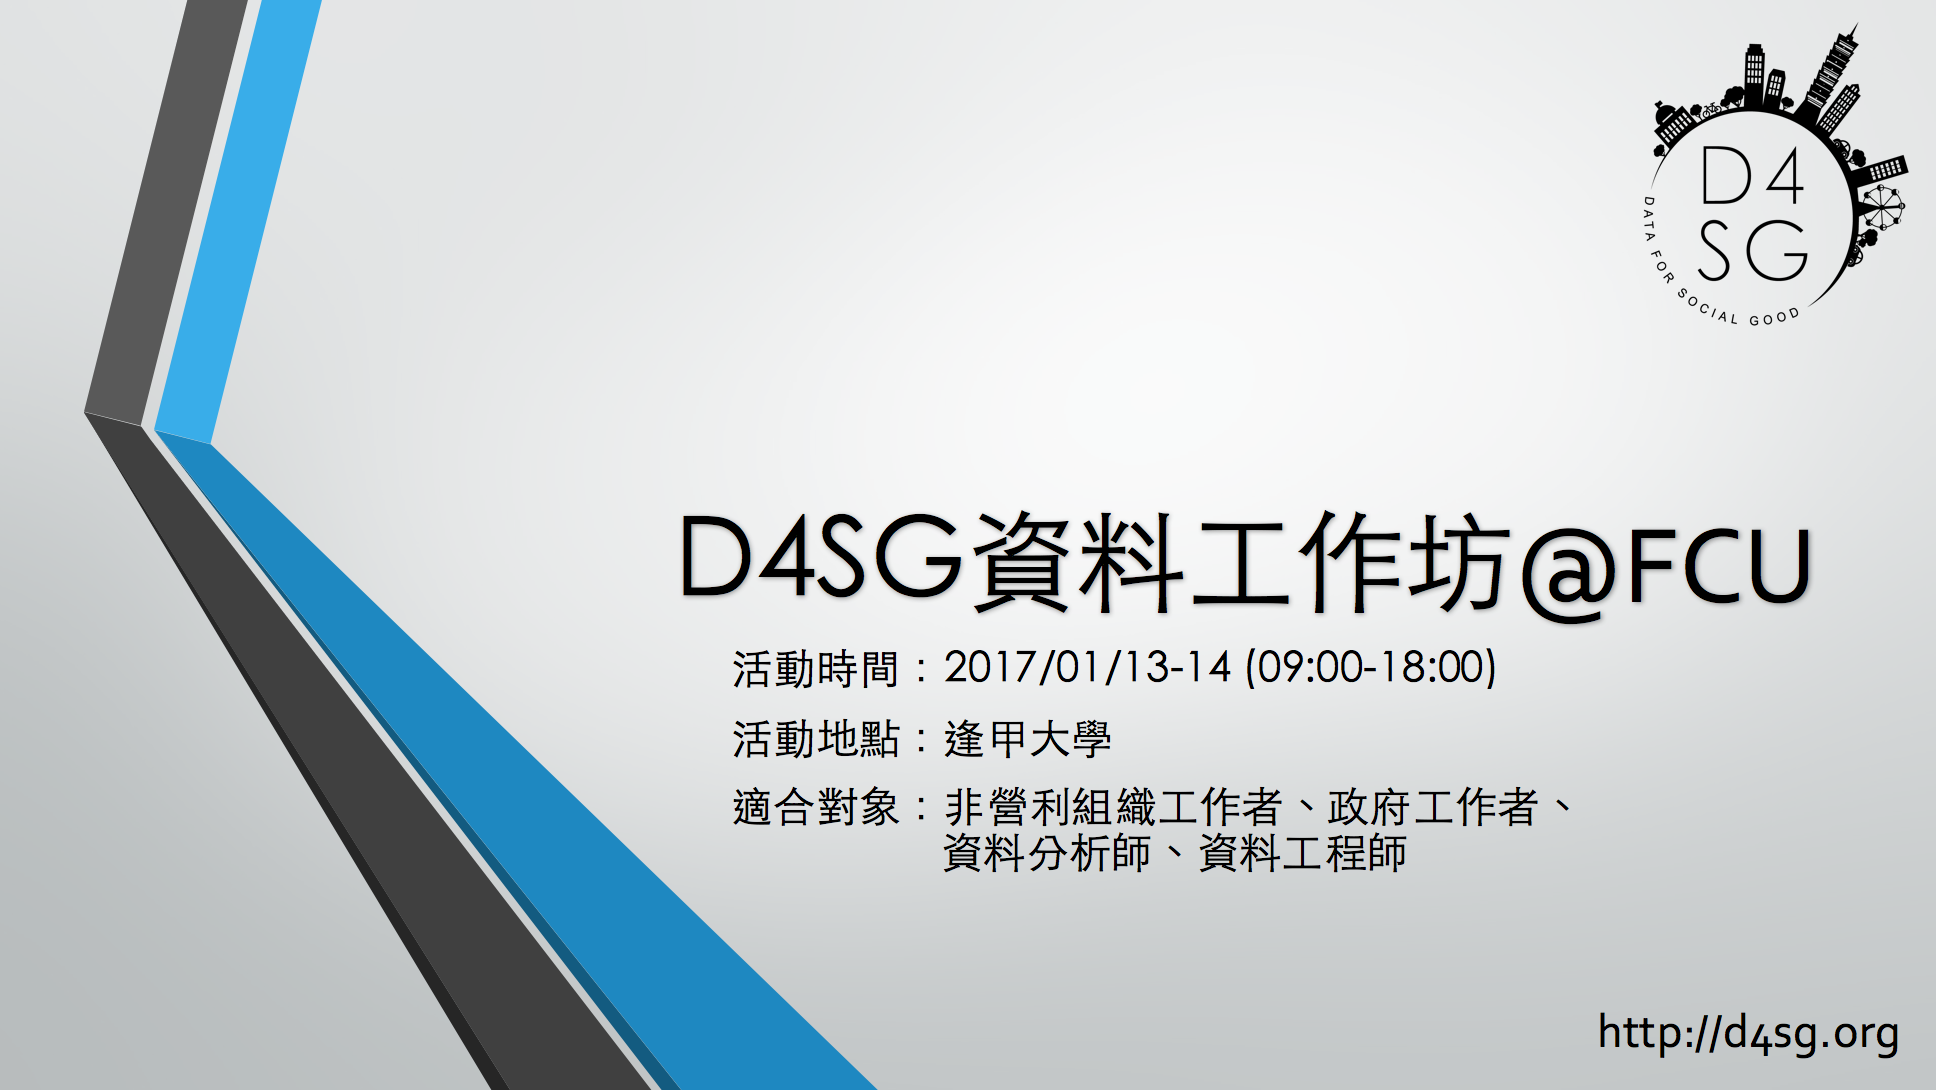 d4sg-workshop-fcu